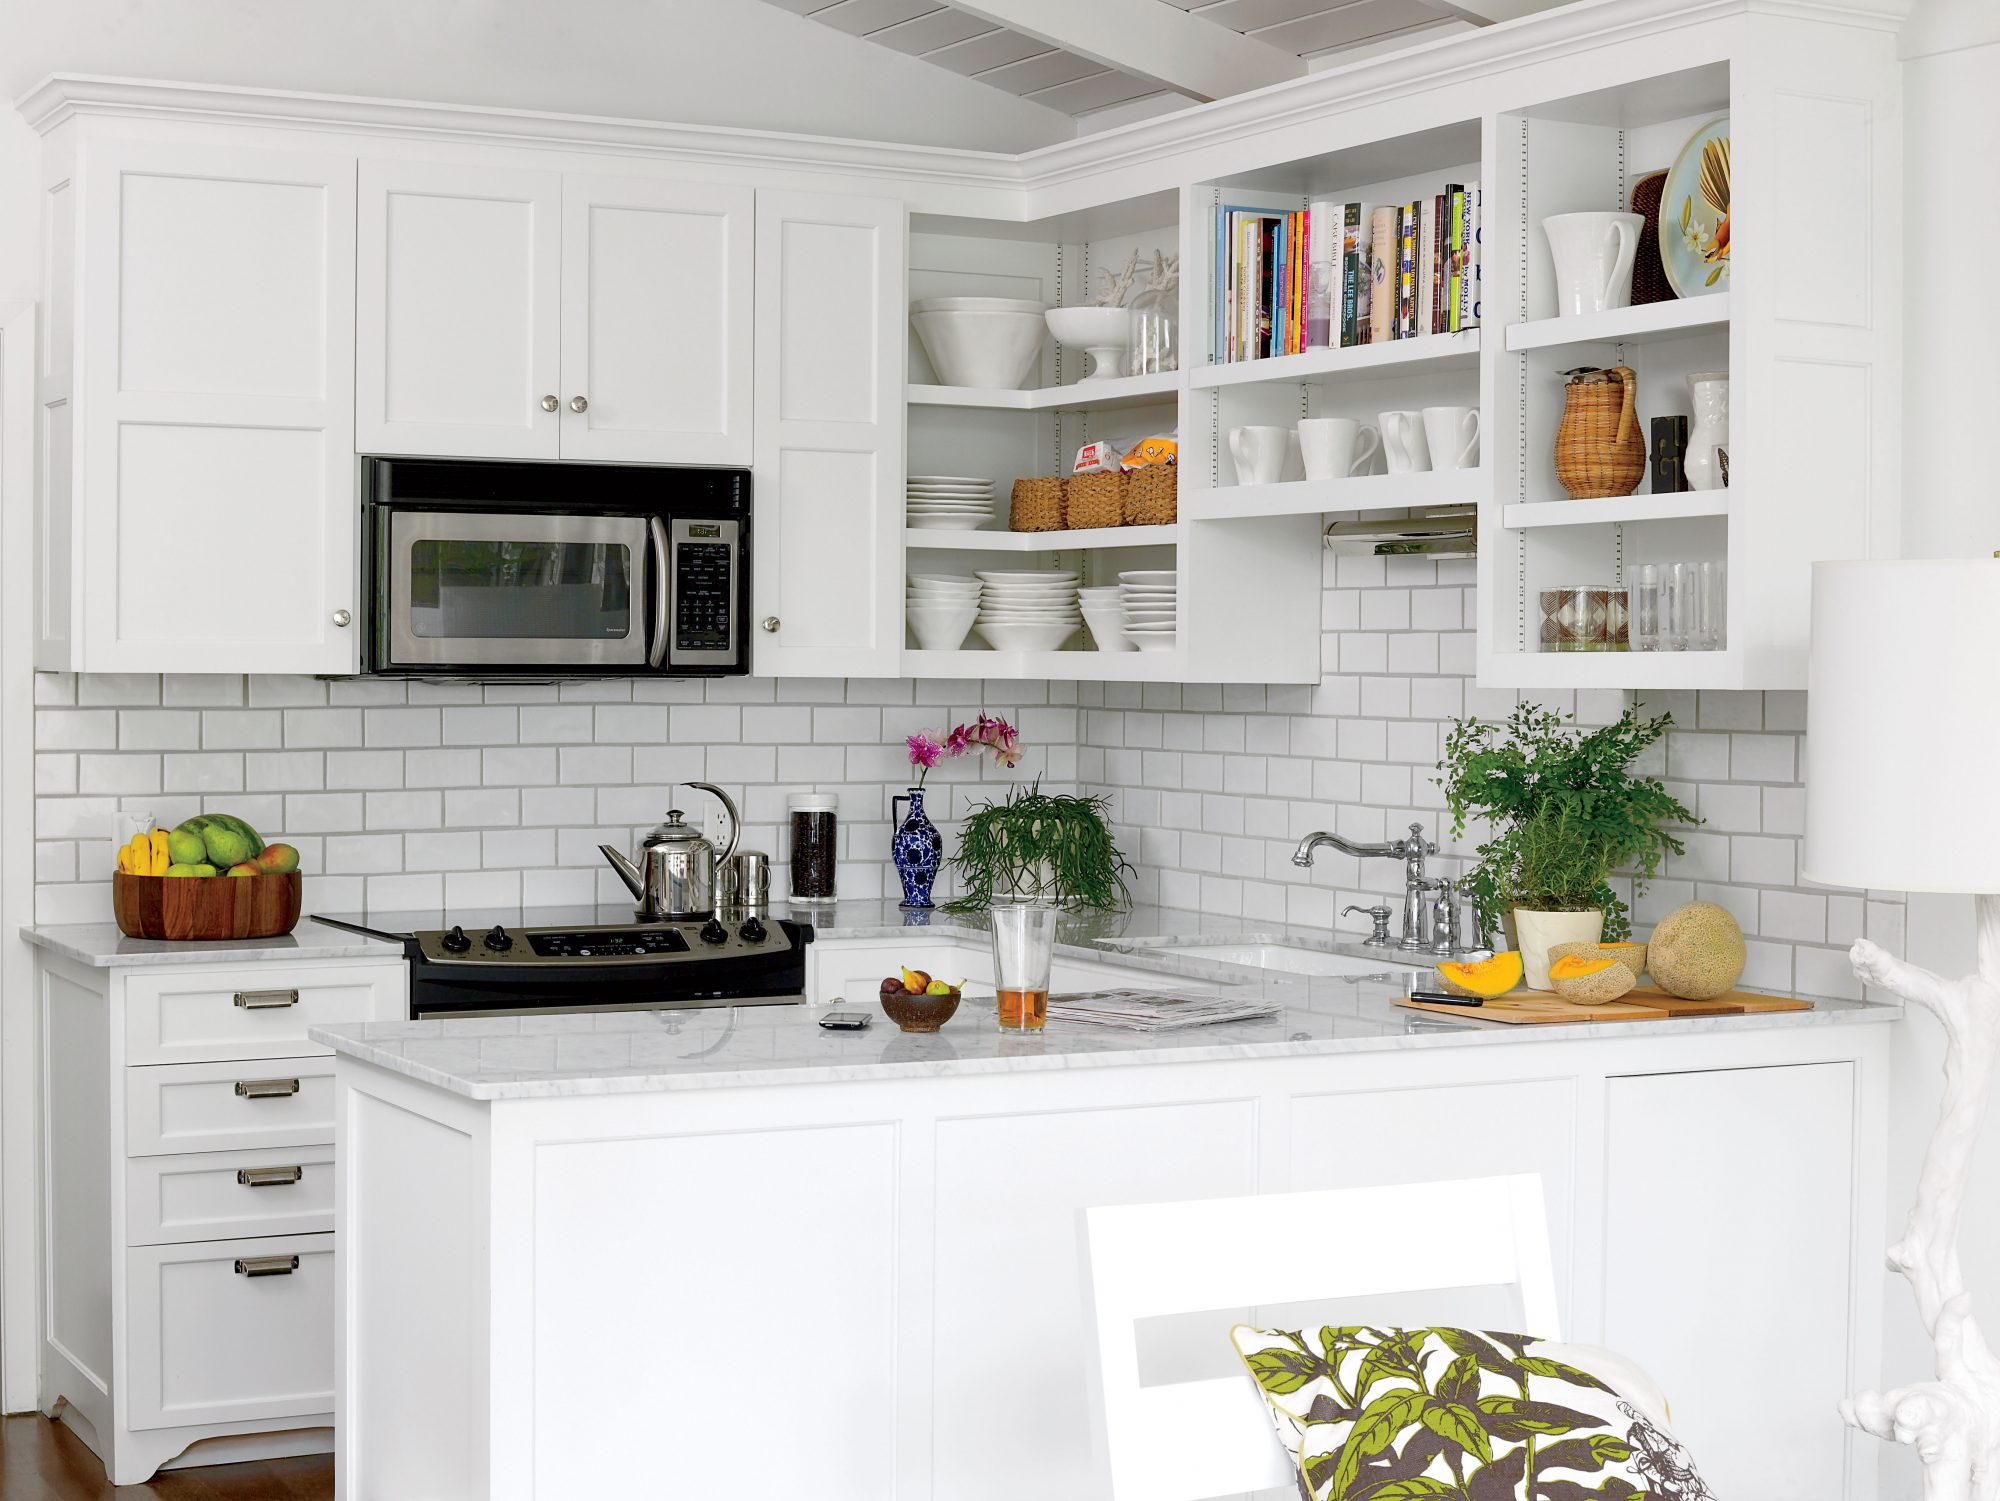 Before-and-After Kitchen Makeovers